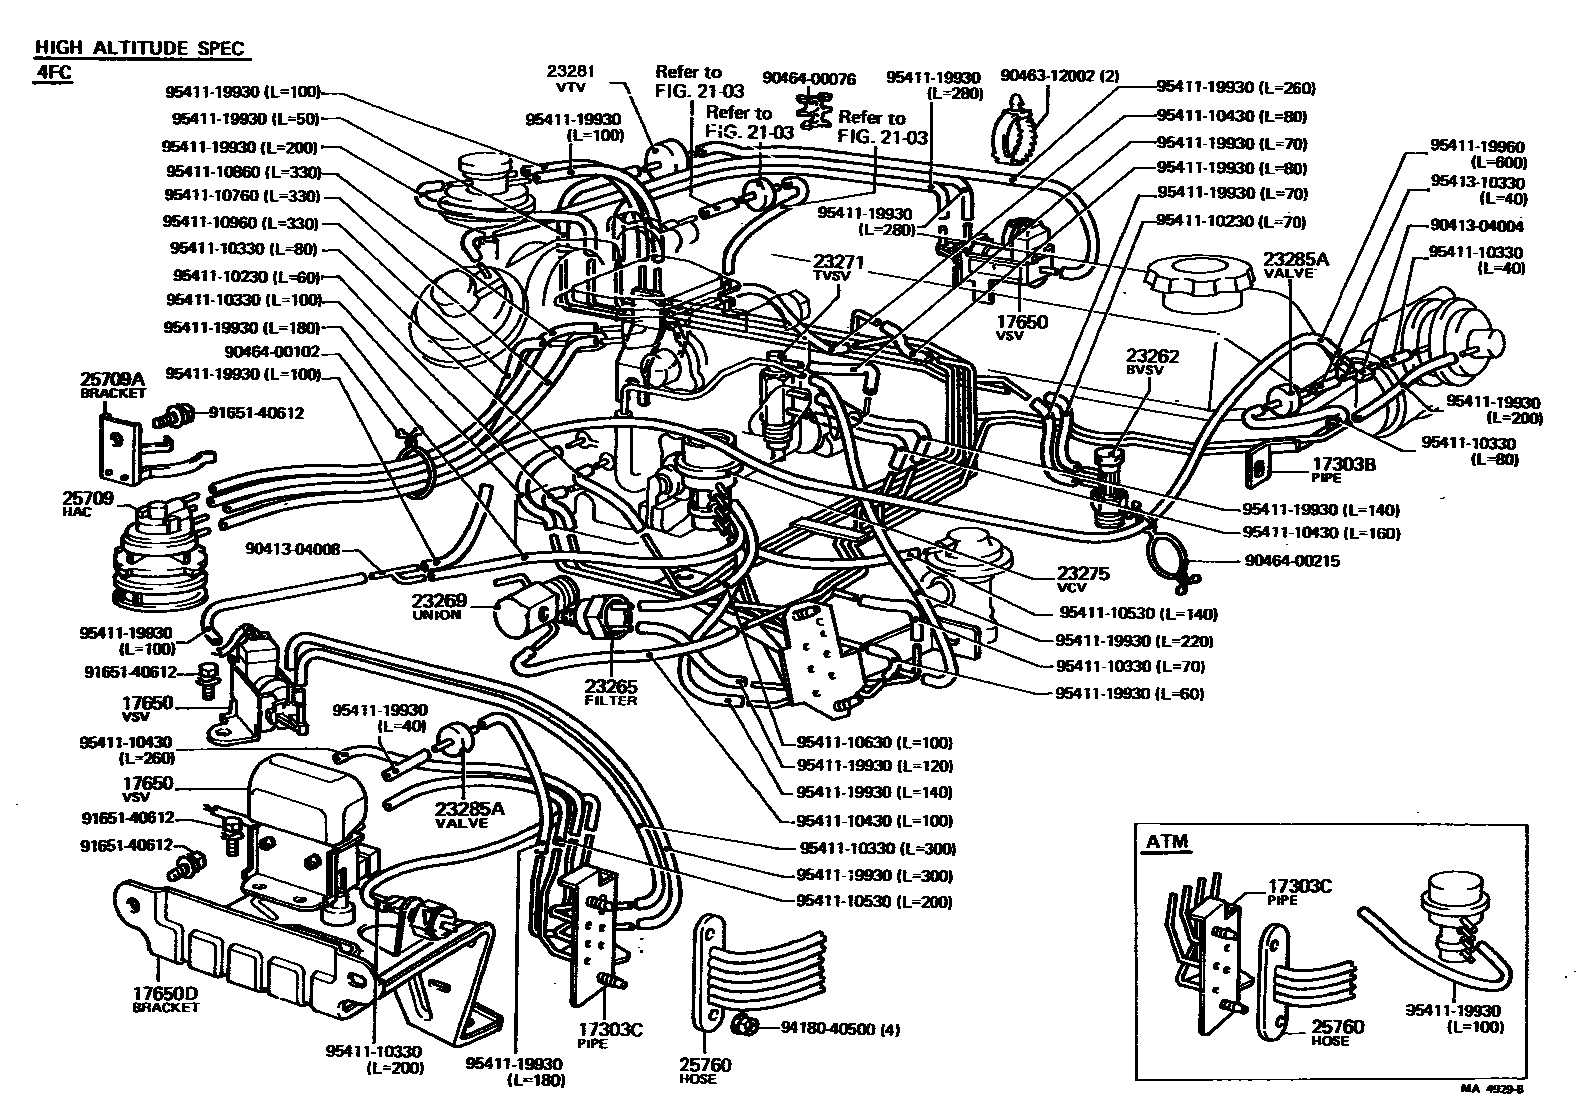 hight resolution of 2008 toyota 4runner engine diagram wiring diagram source 2002 toyota camry engine diagram 1989 toyota v6 engine diagram